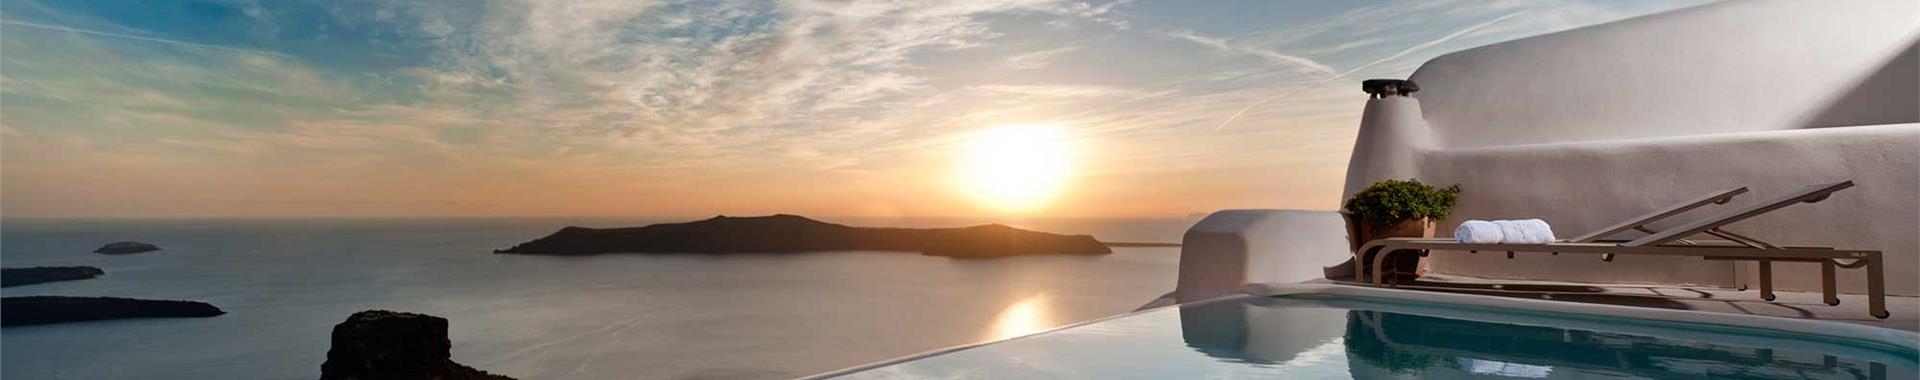 Fira, Perivolos or Vourvoulos Santorini Honeymoon Hotels